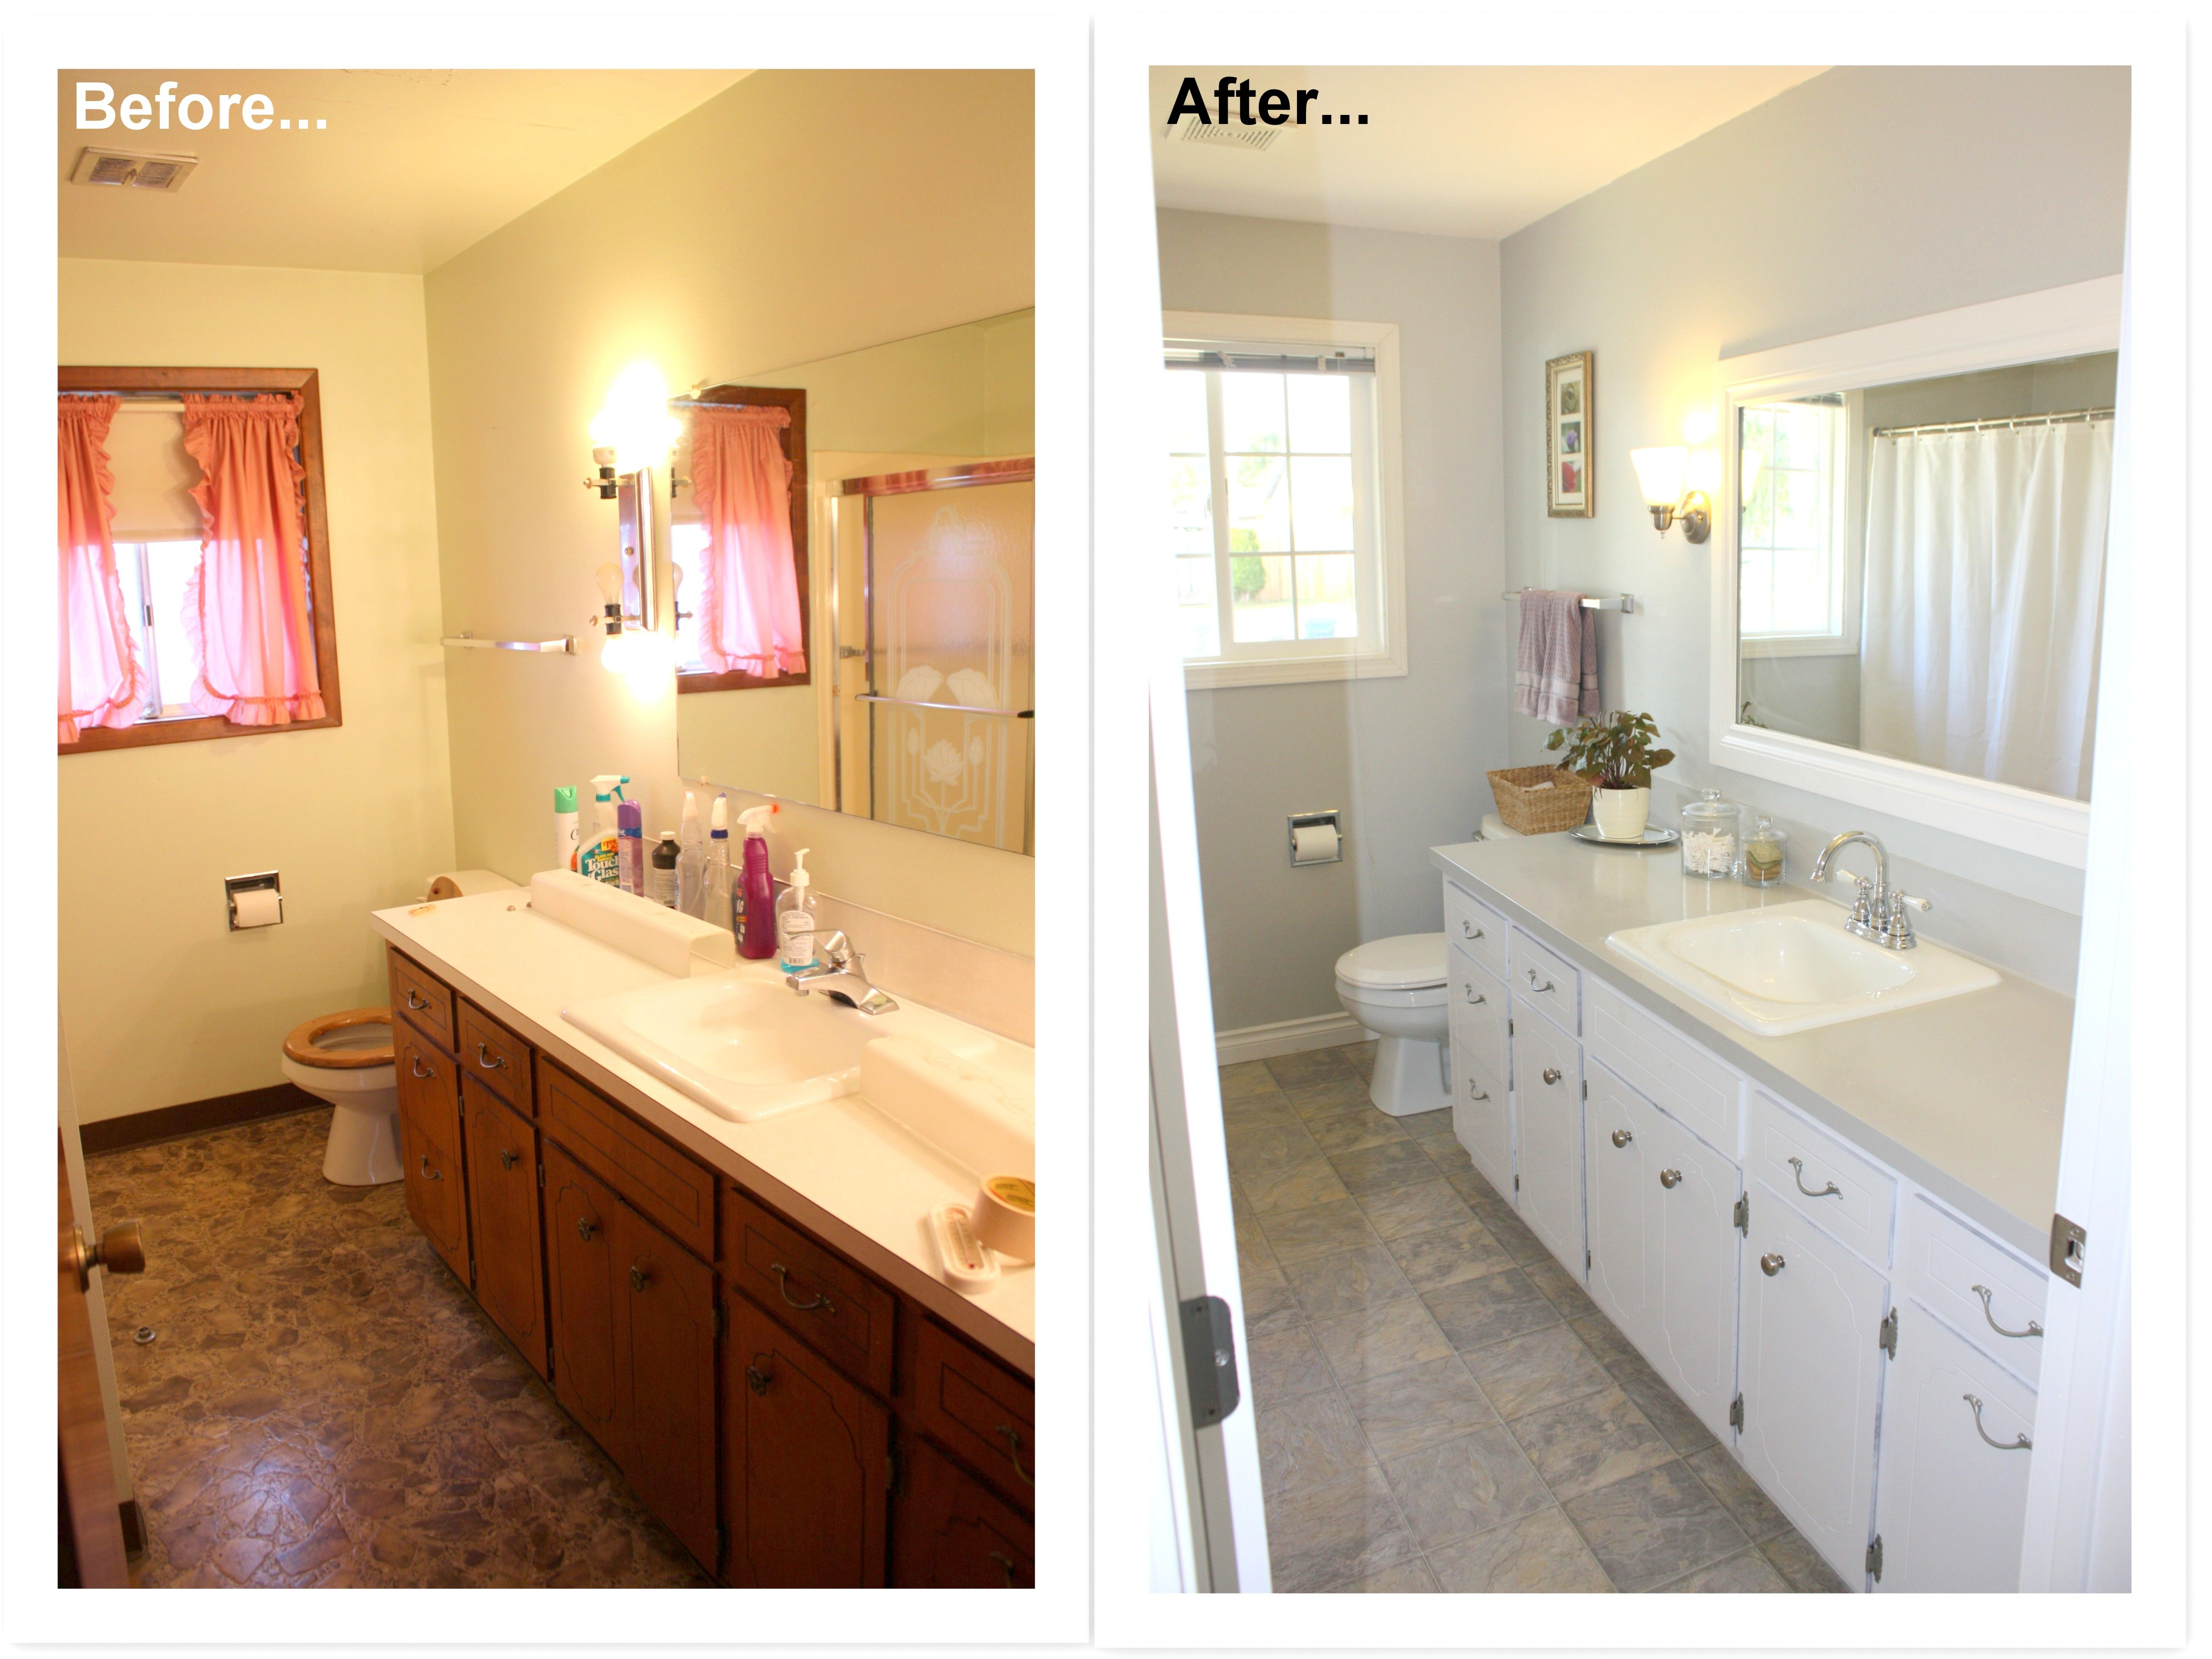 Bathroom Makeover Remodel Before And After 1960 S Bathroom To Modern And Updated Gray Bathroom Bathroom Makeover Painted Bathroom Floors Paint Cabinets White